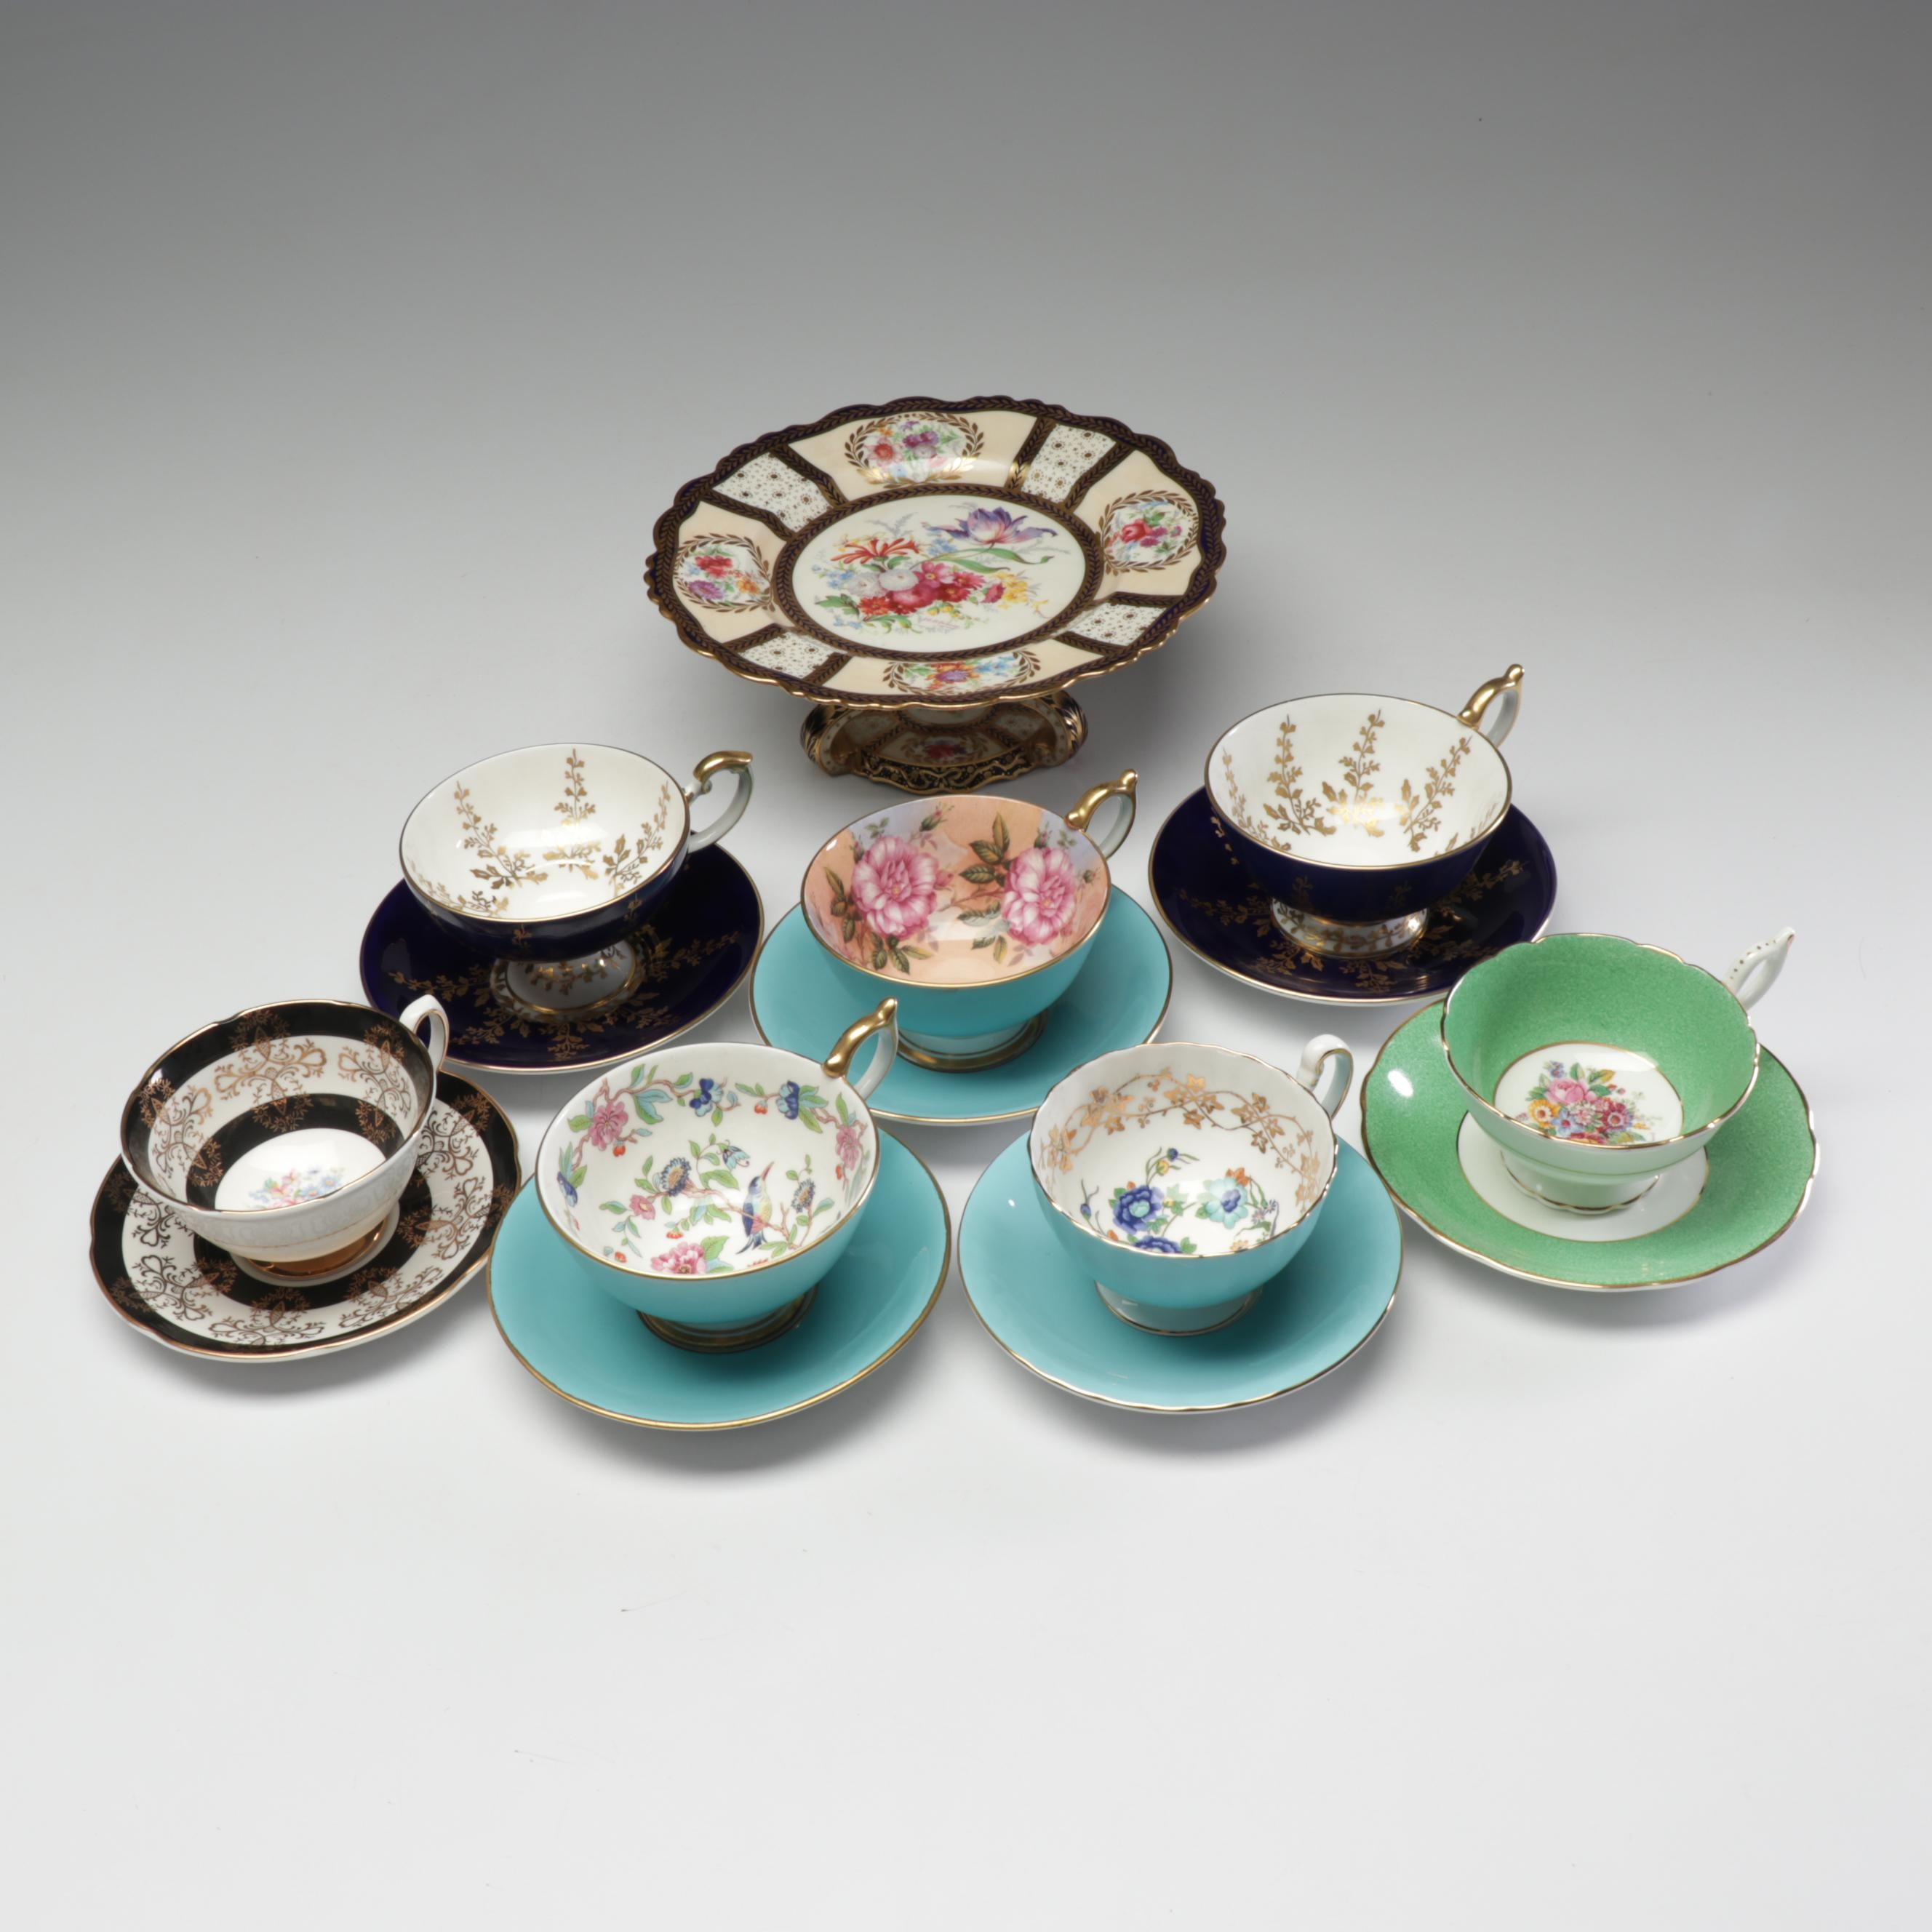 English Bone China Tea Settings and Cake Stand